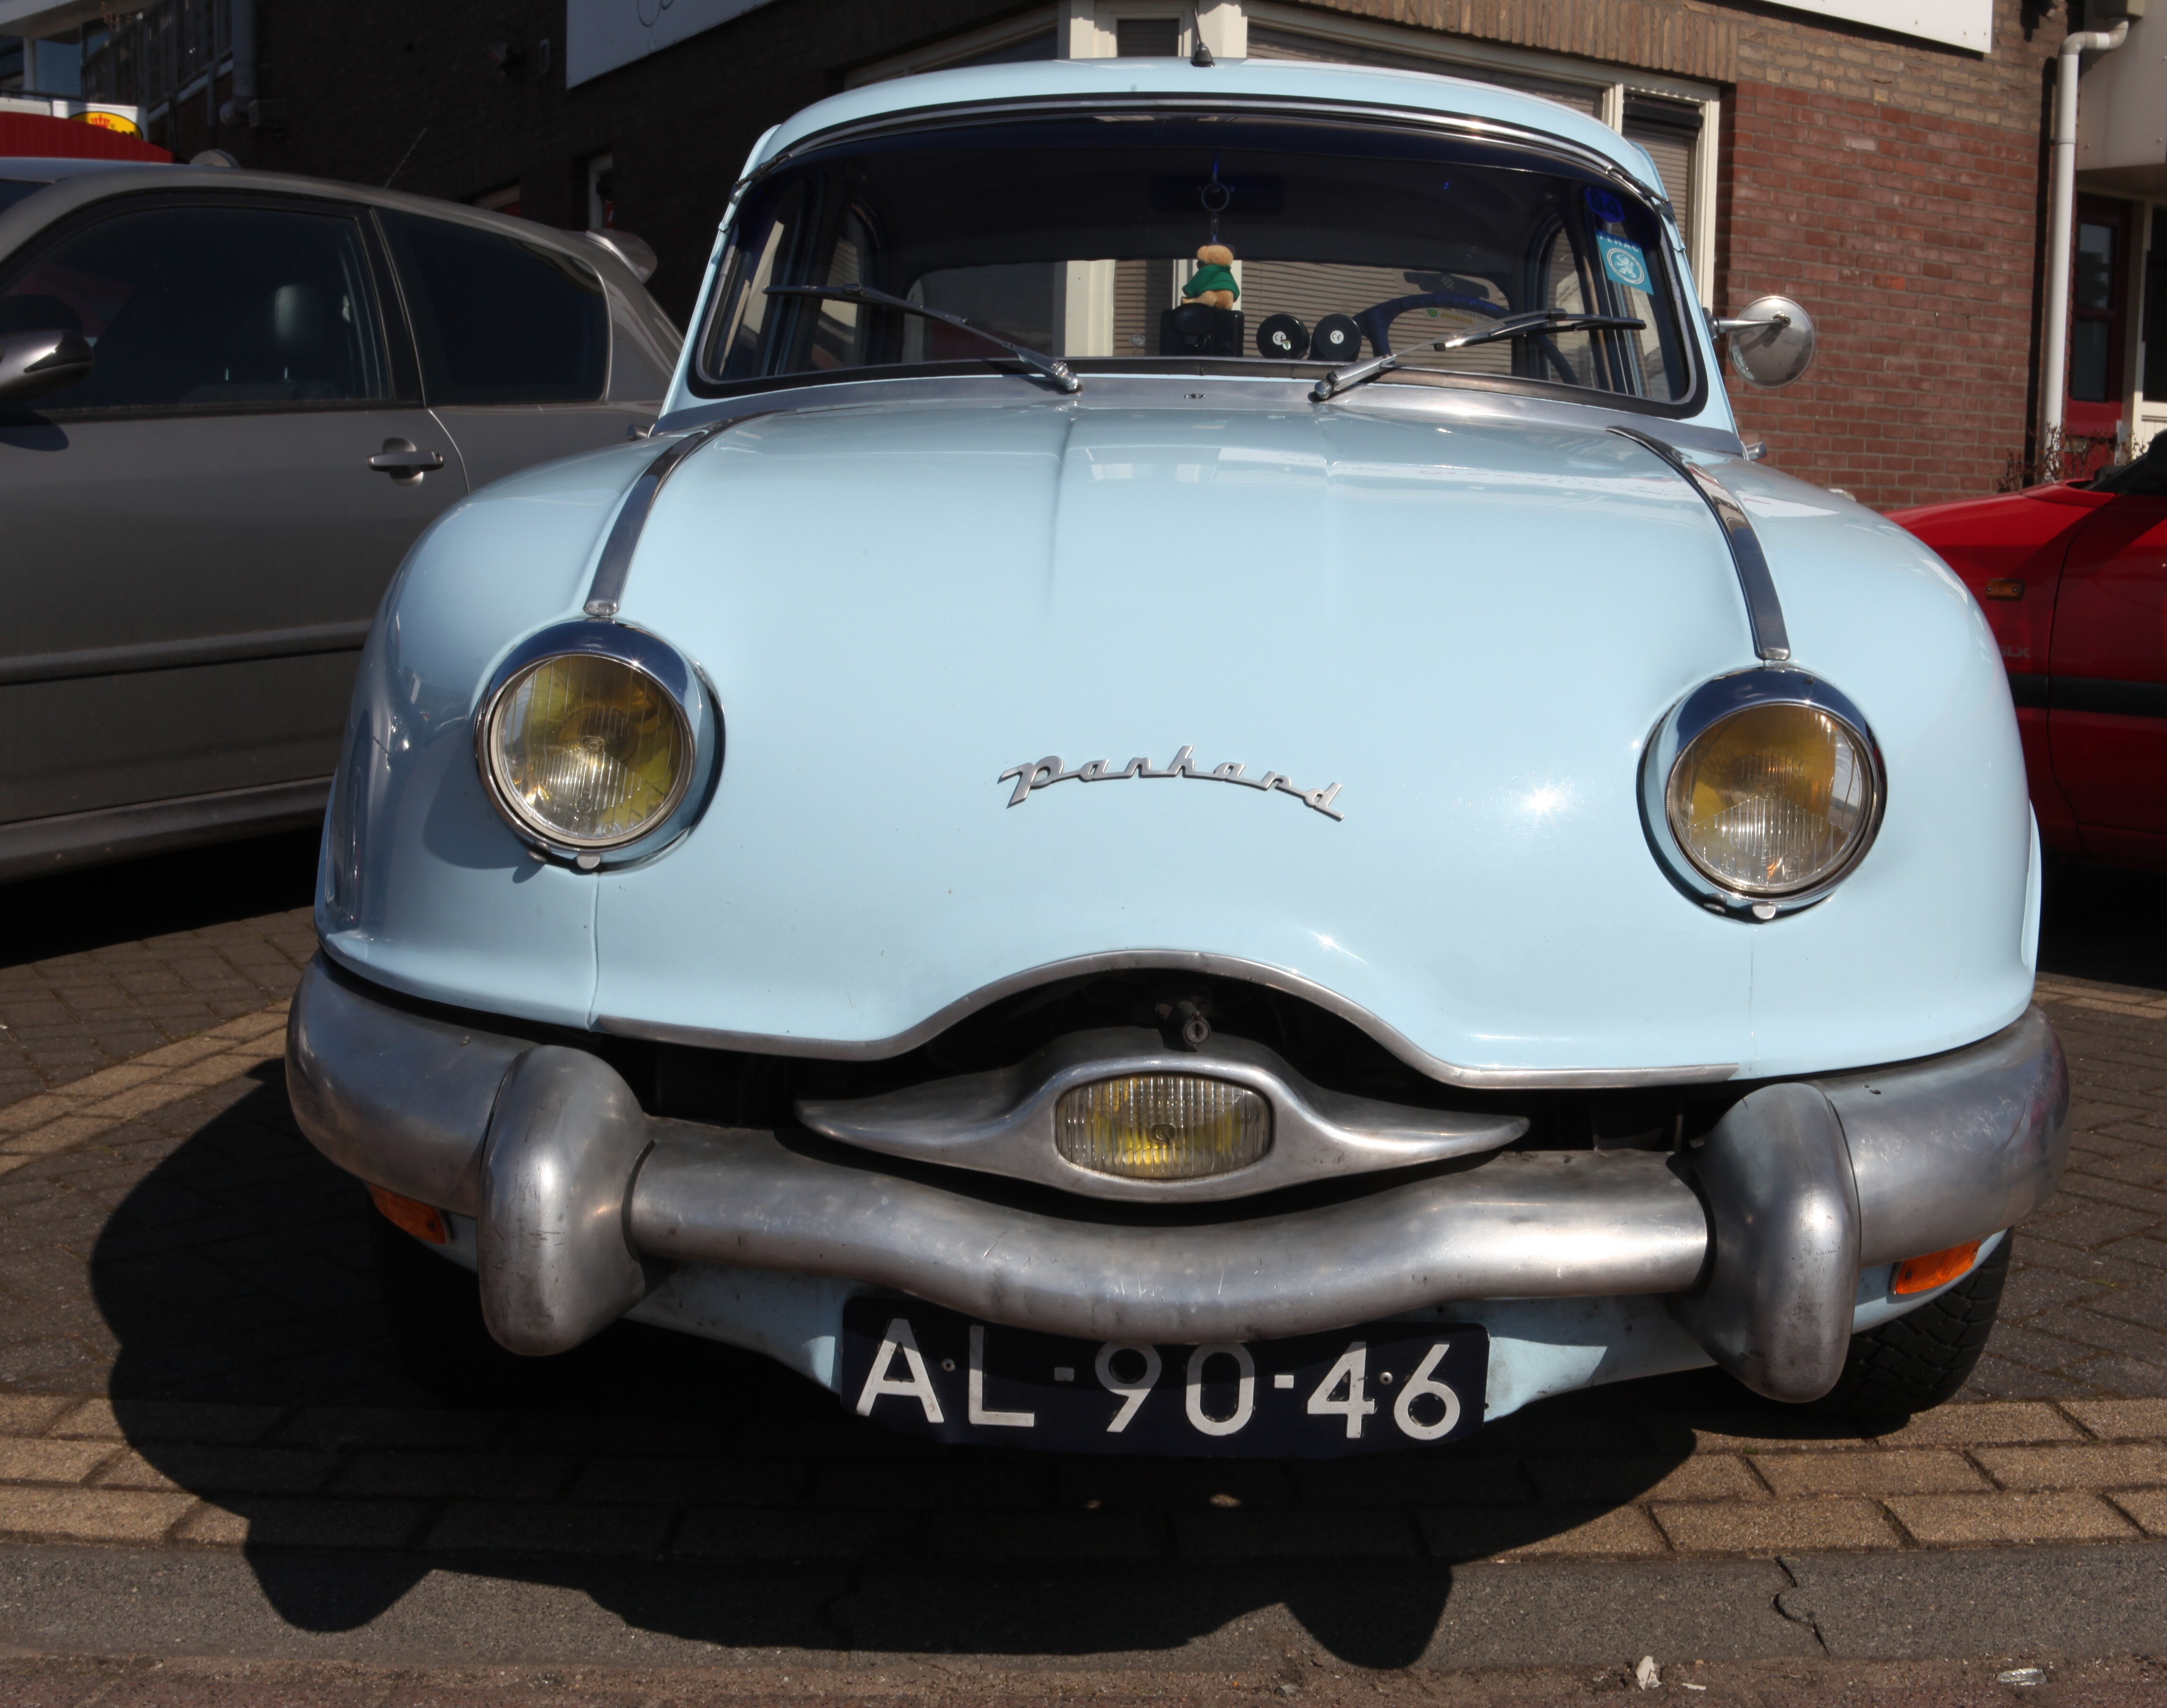 File:Panhard Dyna Z with a Tigre engine, front view.jpg ...